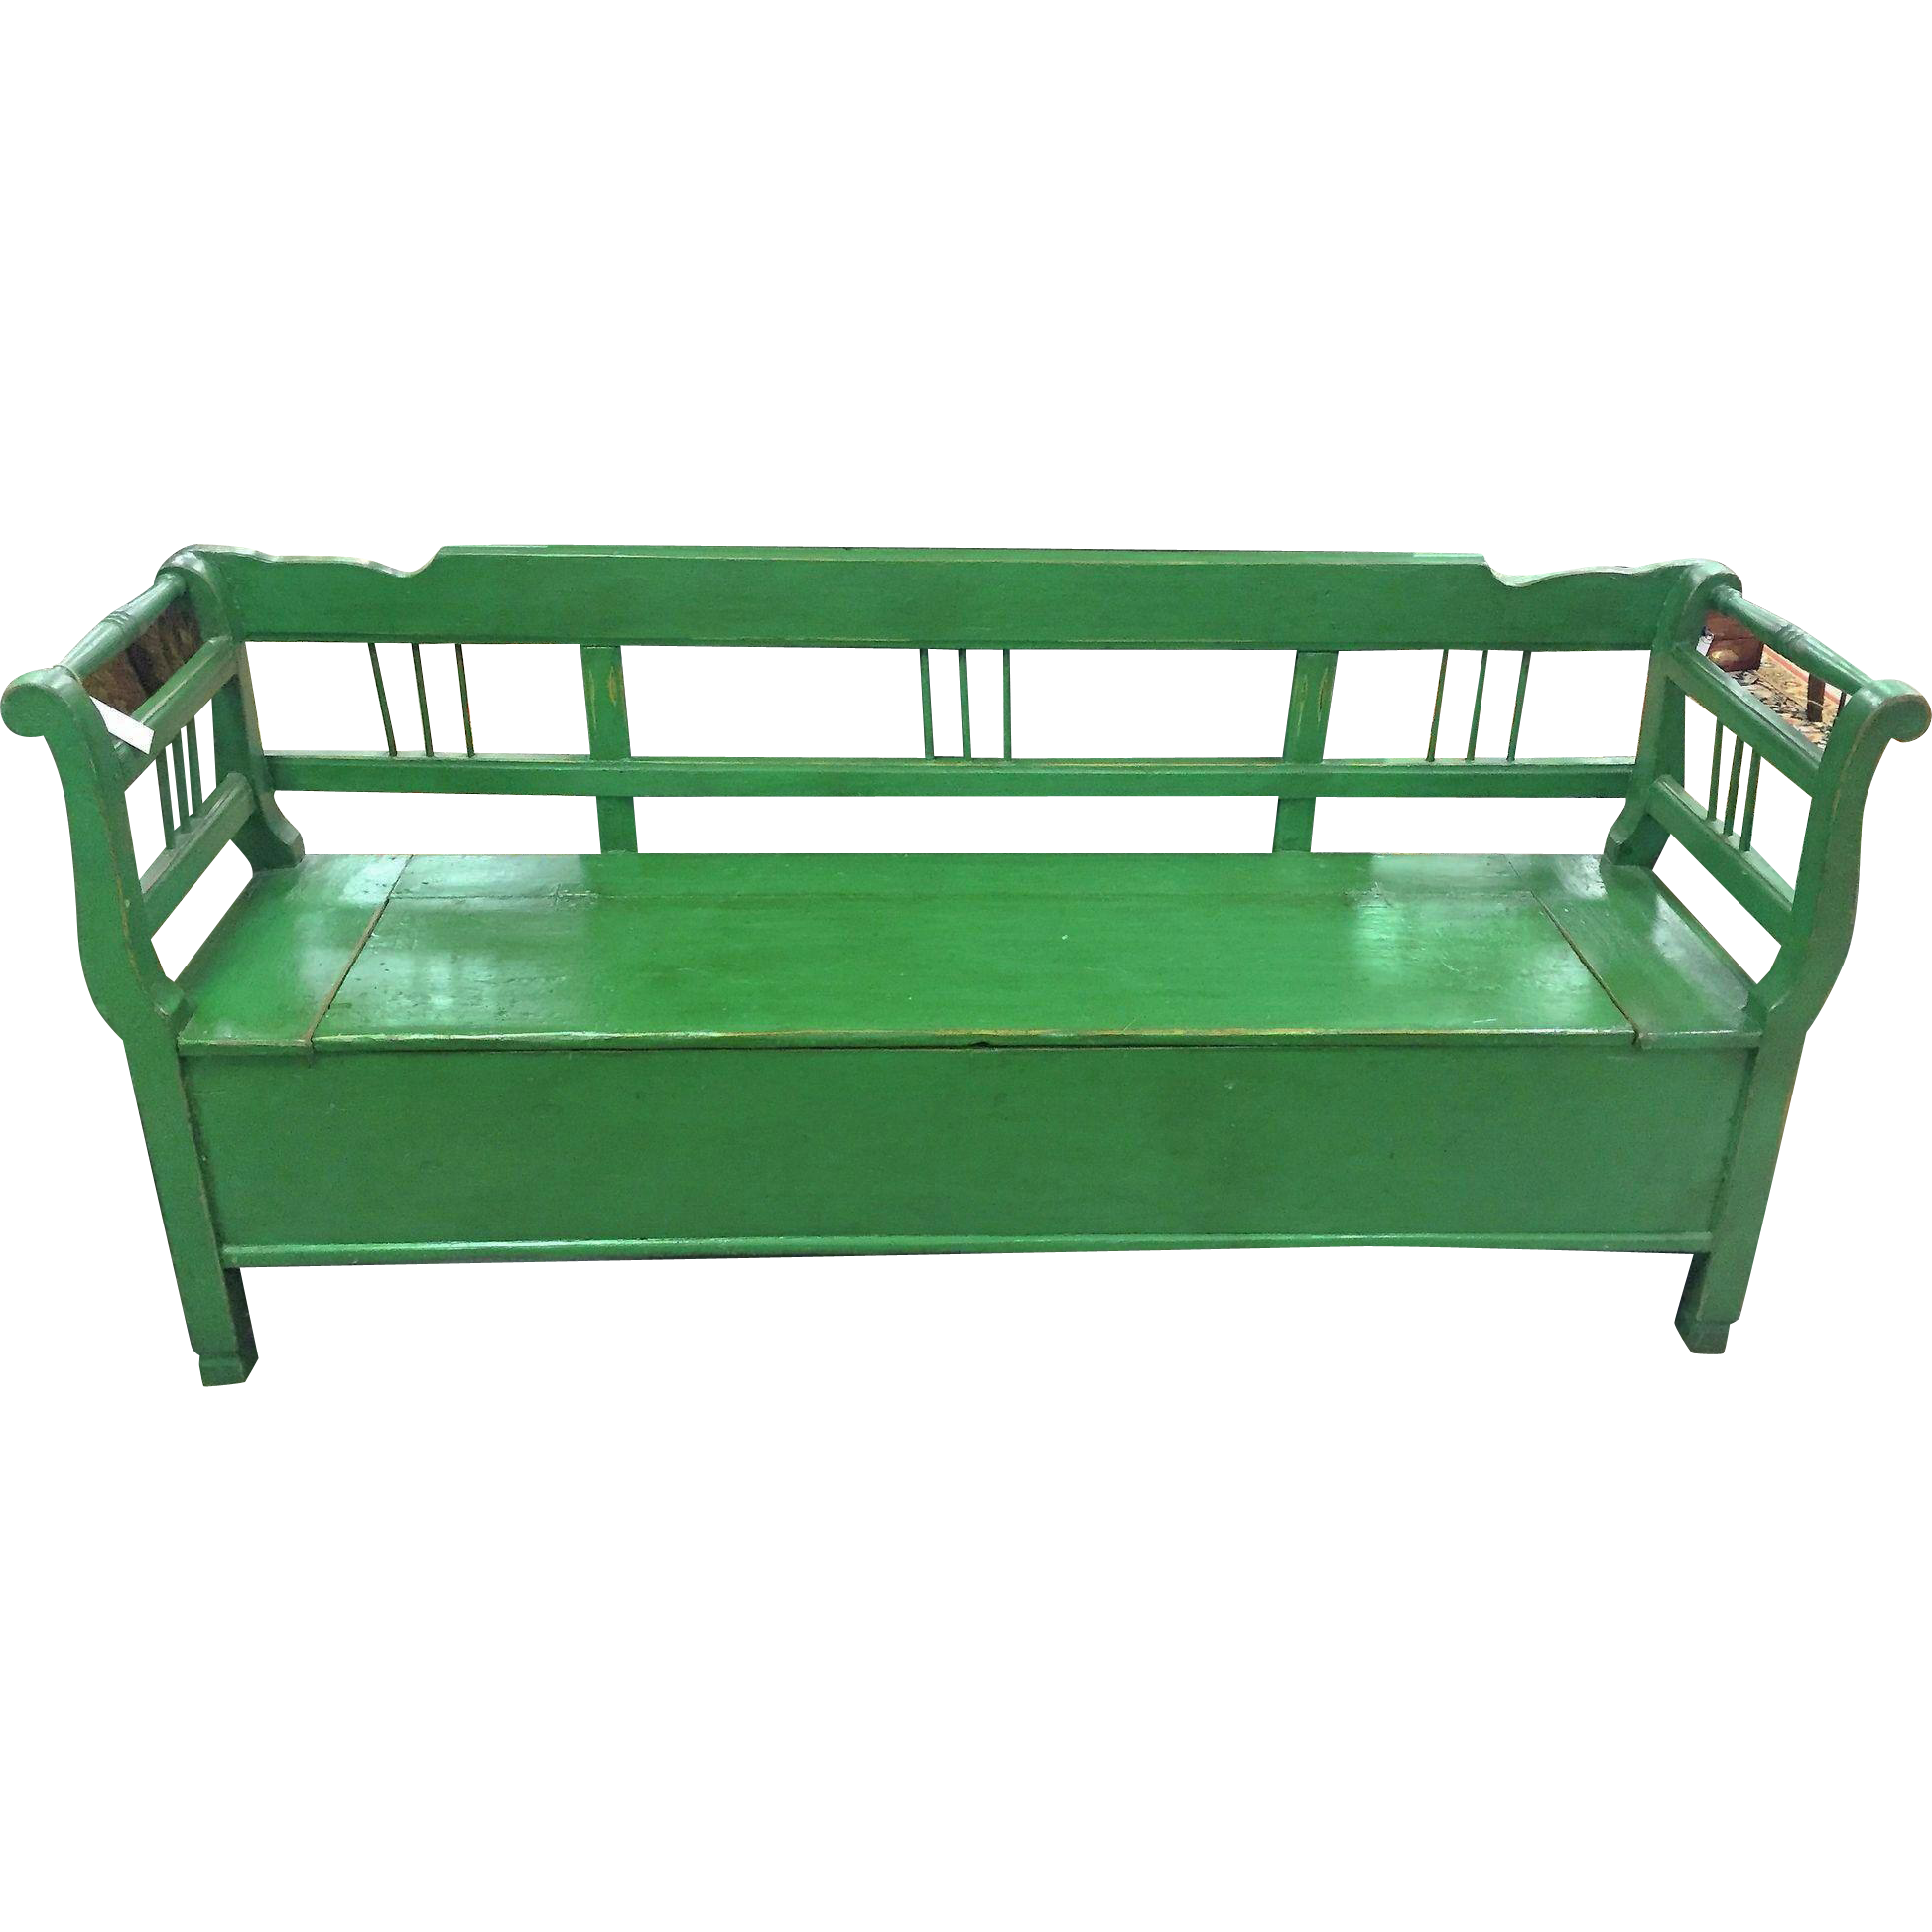 Pine European Green Bench With Storage From Hoppie On Ruby Lane